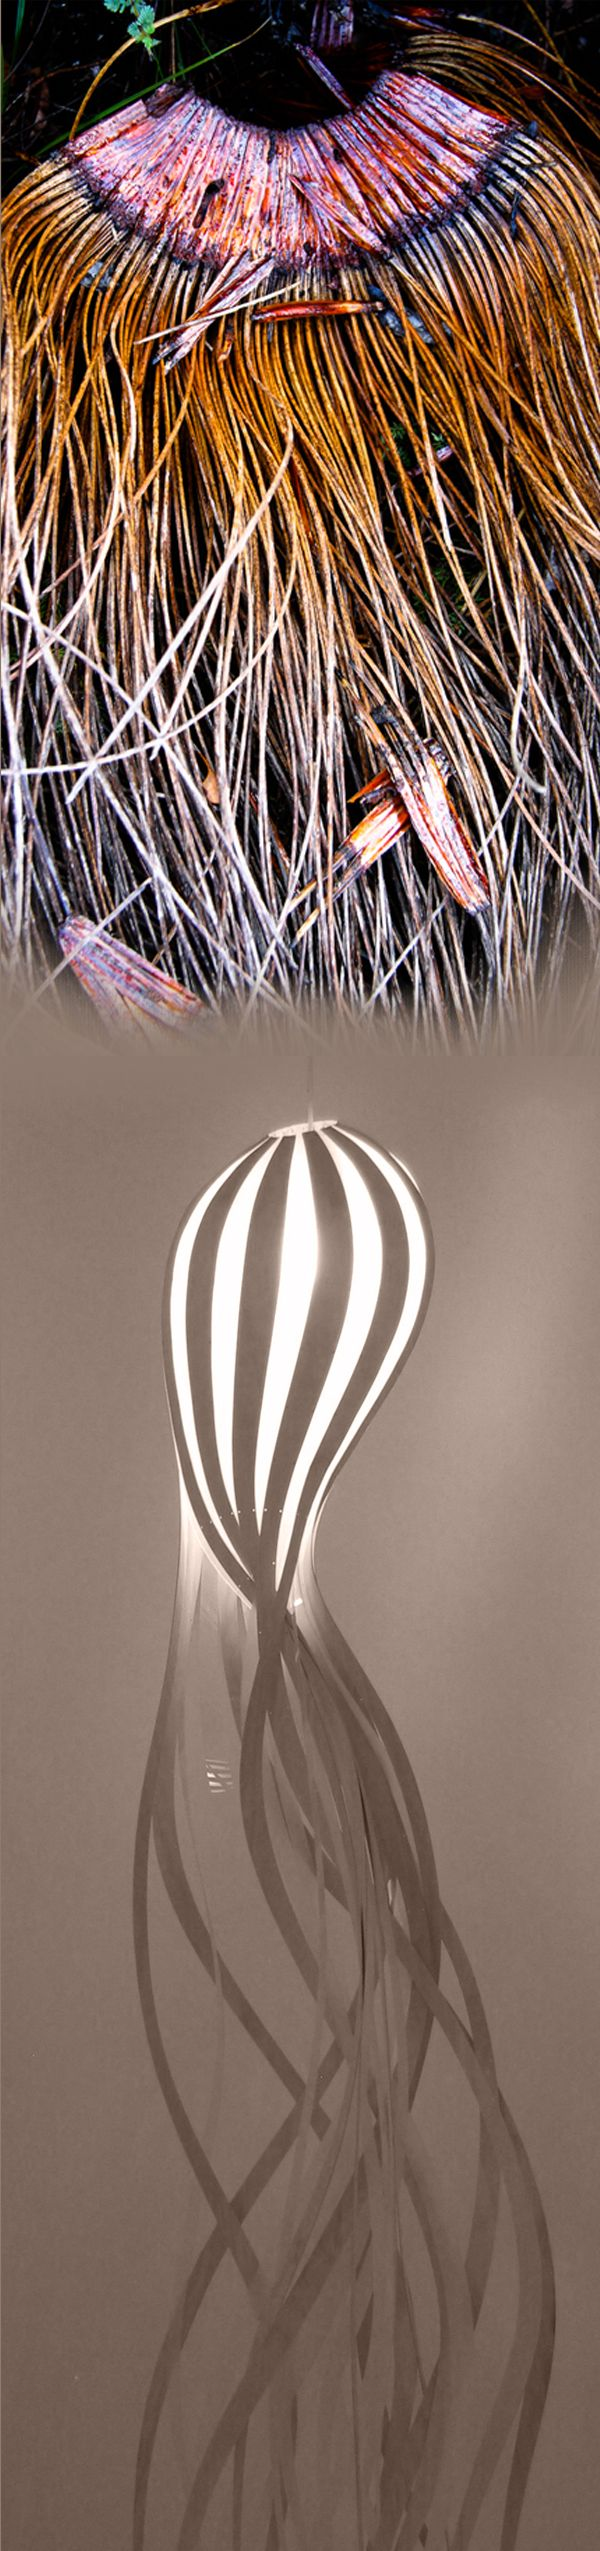 Nature takes many forms. The Squirt pendant light is shown here, unravelling, as if it's becoming part of the natural world once again.